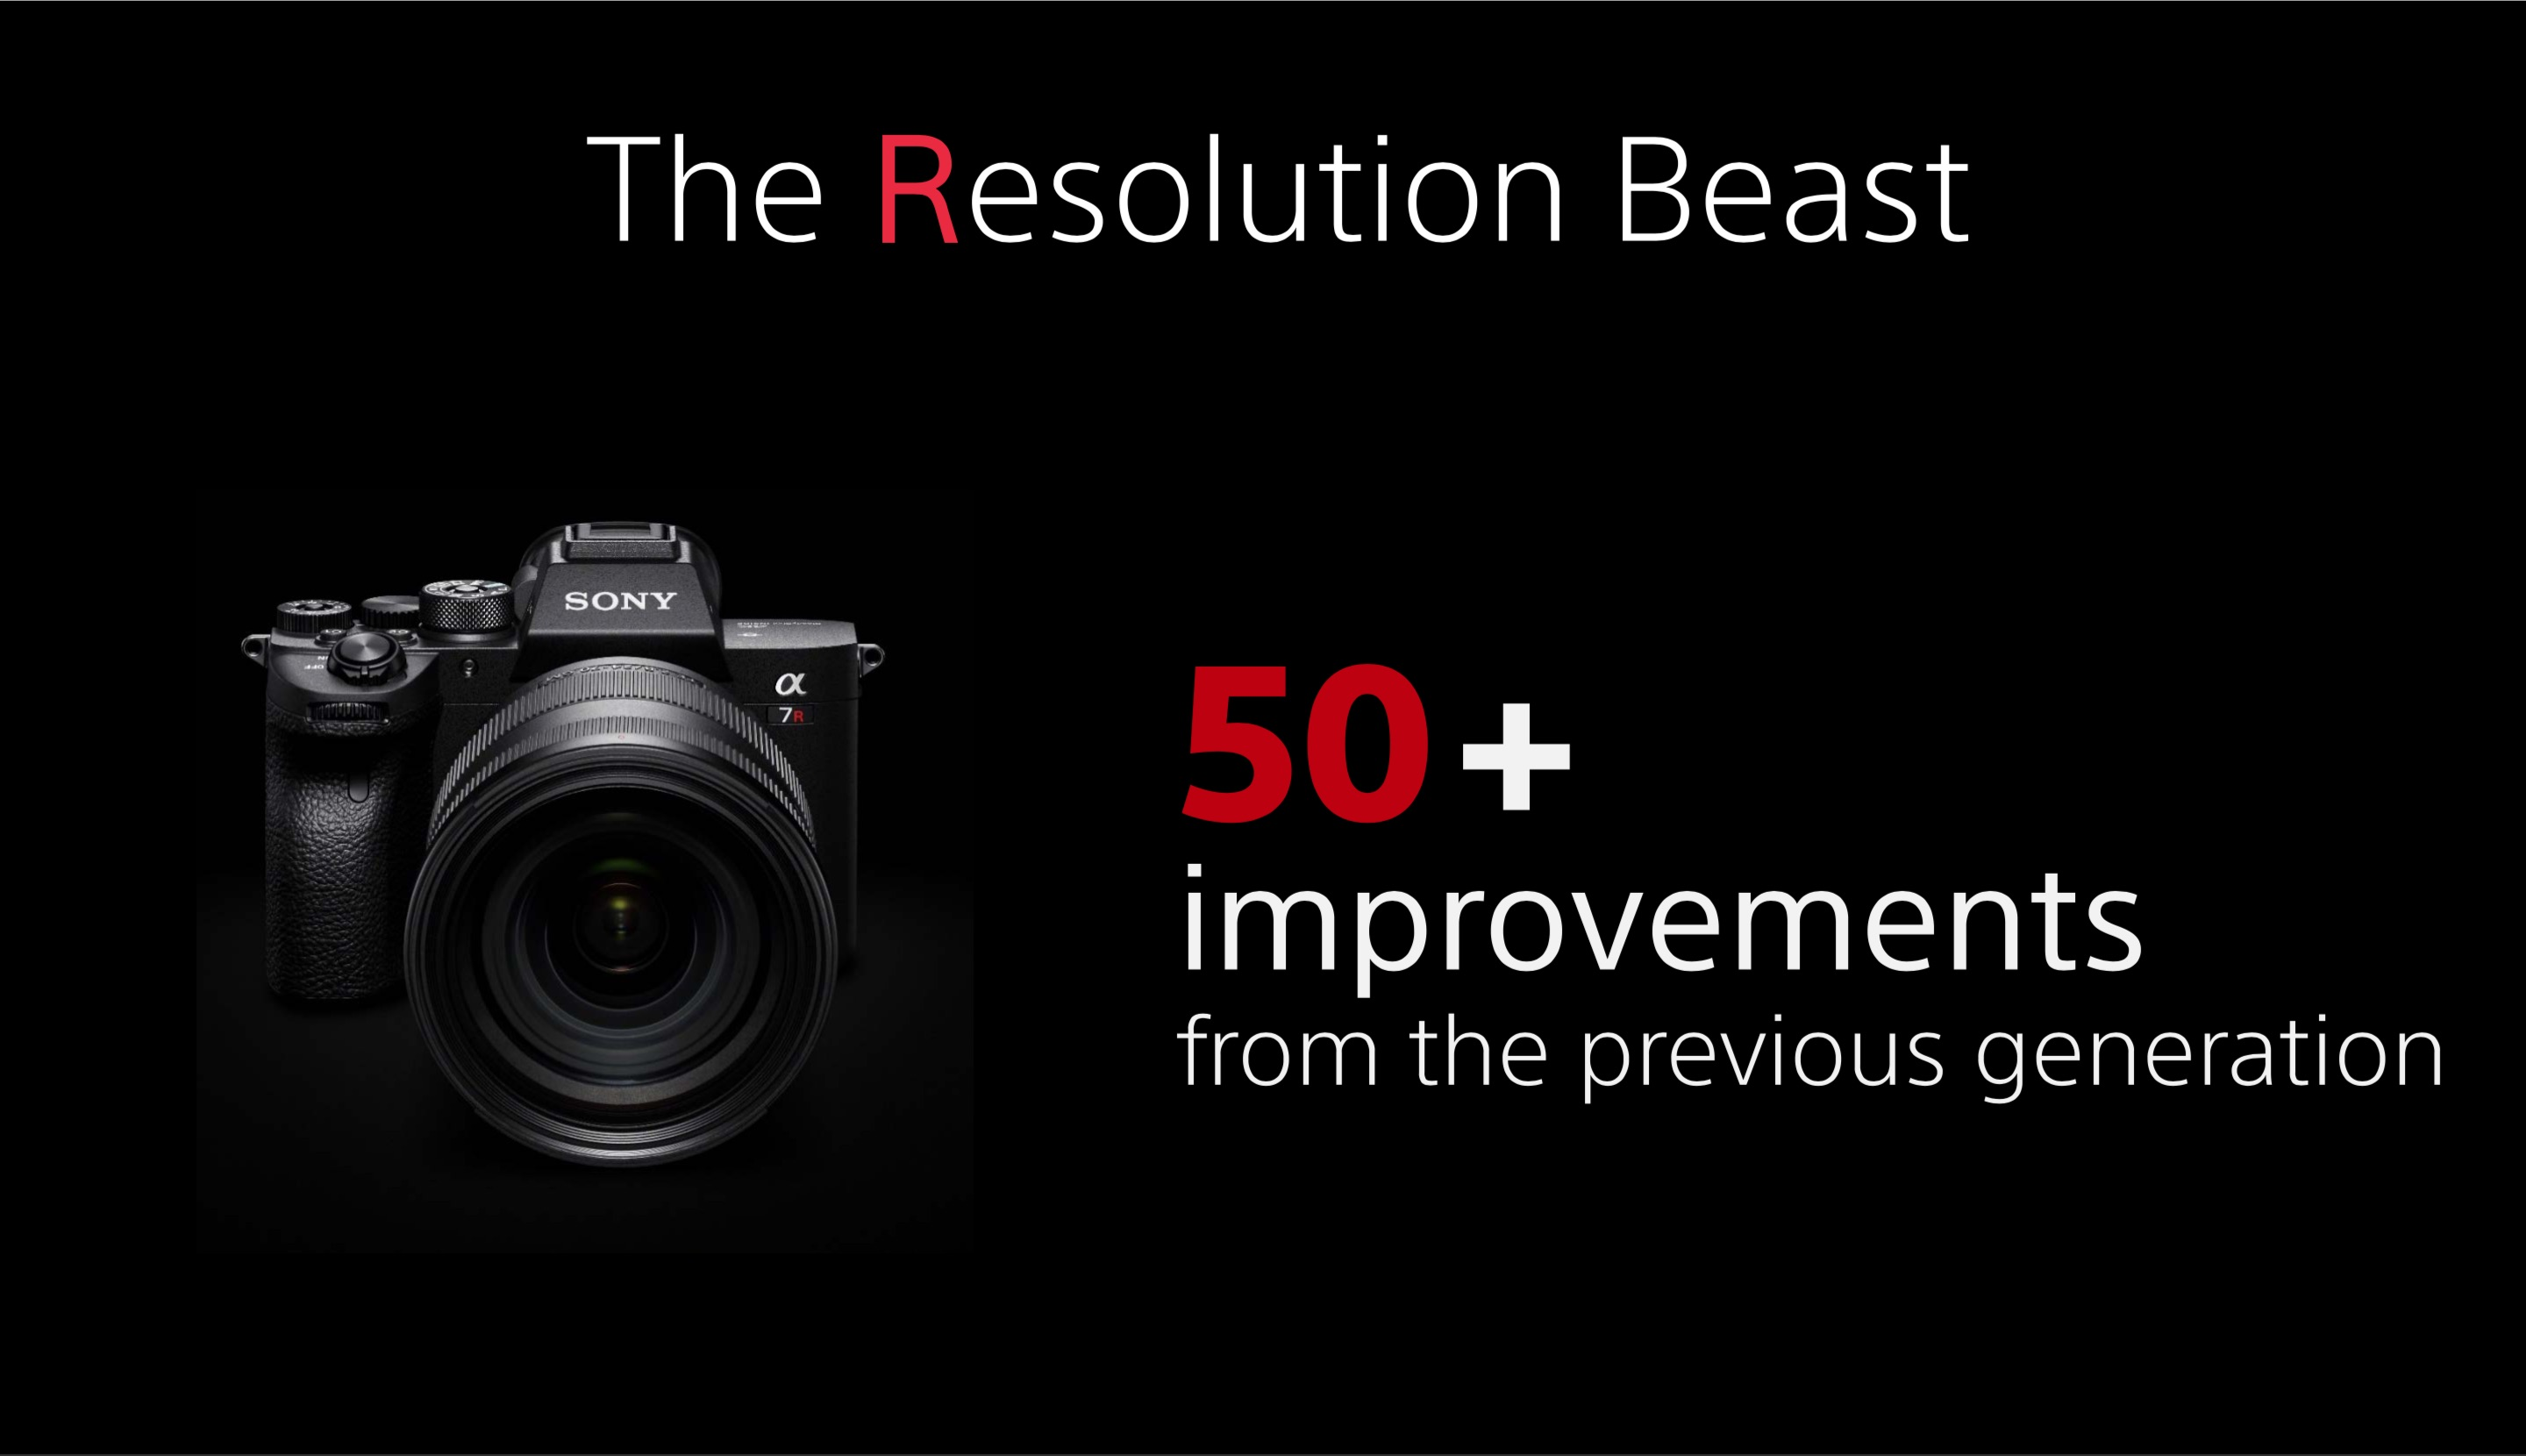 Sony A7R IV mirrorless camera is packed with a 61-megapixel sensor